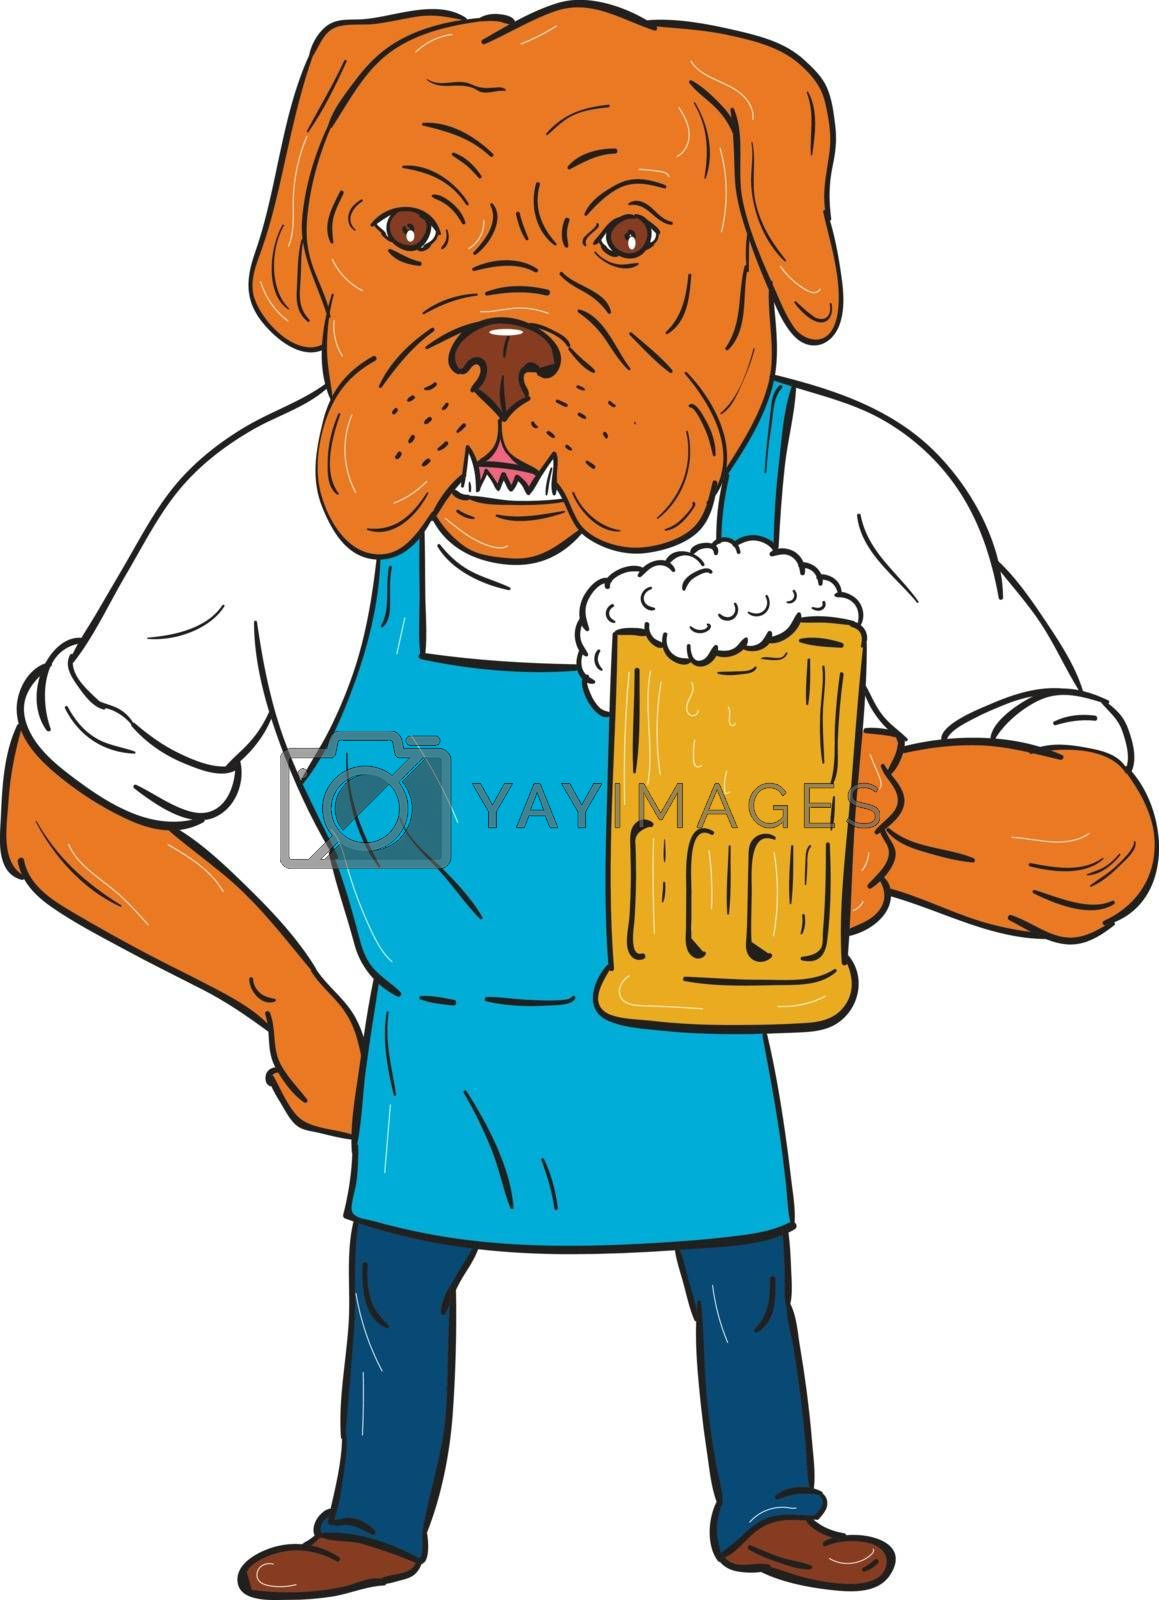 Illustration of a Dogue de Bordeaux, Bordeaux Mastiff, French Mastiff or Bordeaux dog, a large French Mastiff breed one of the most ancient French dog breeds brewer wearing apron holding beer mug with one hand on hip viewed from front set on isolated white background done in cartoon style.